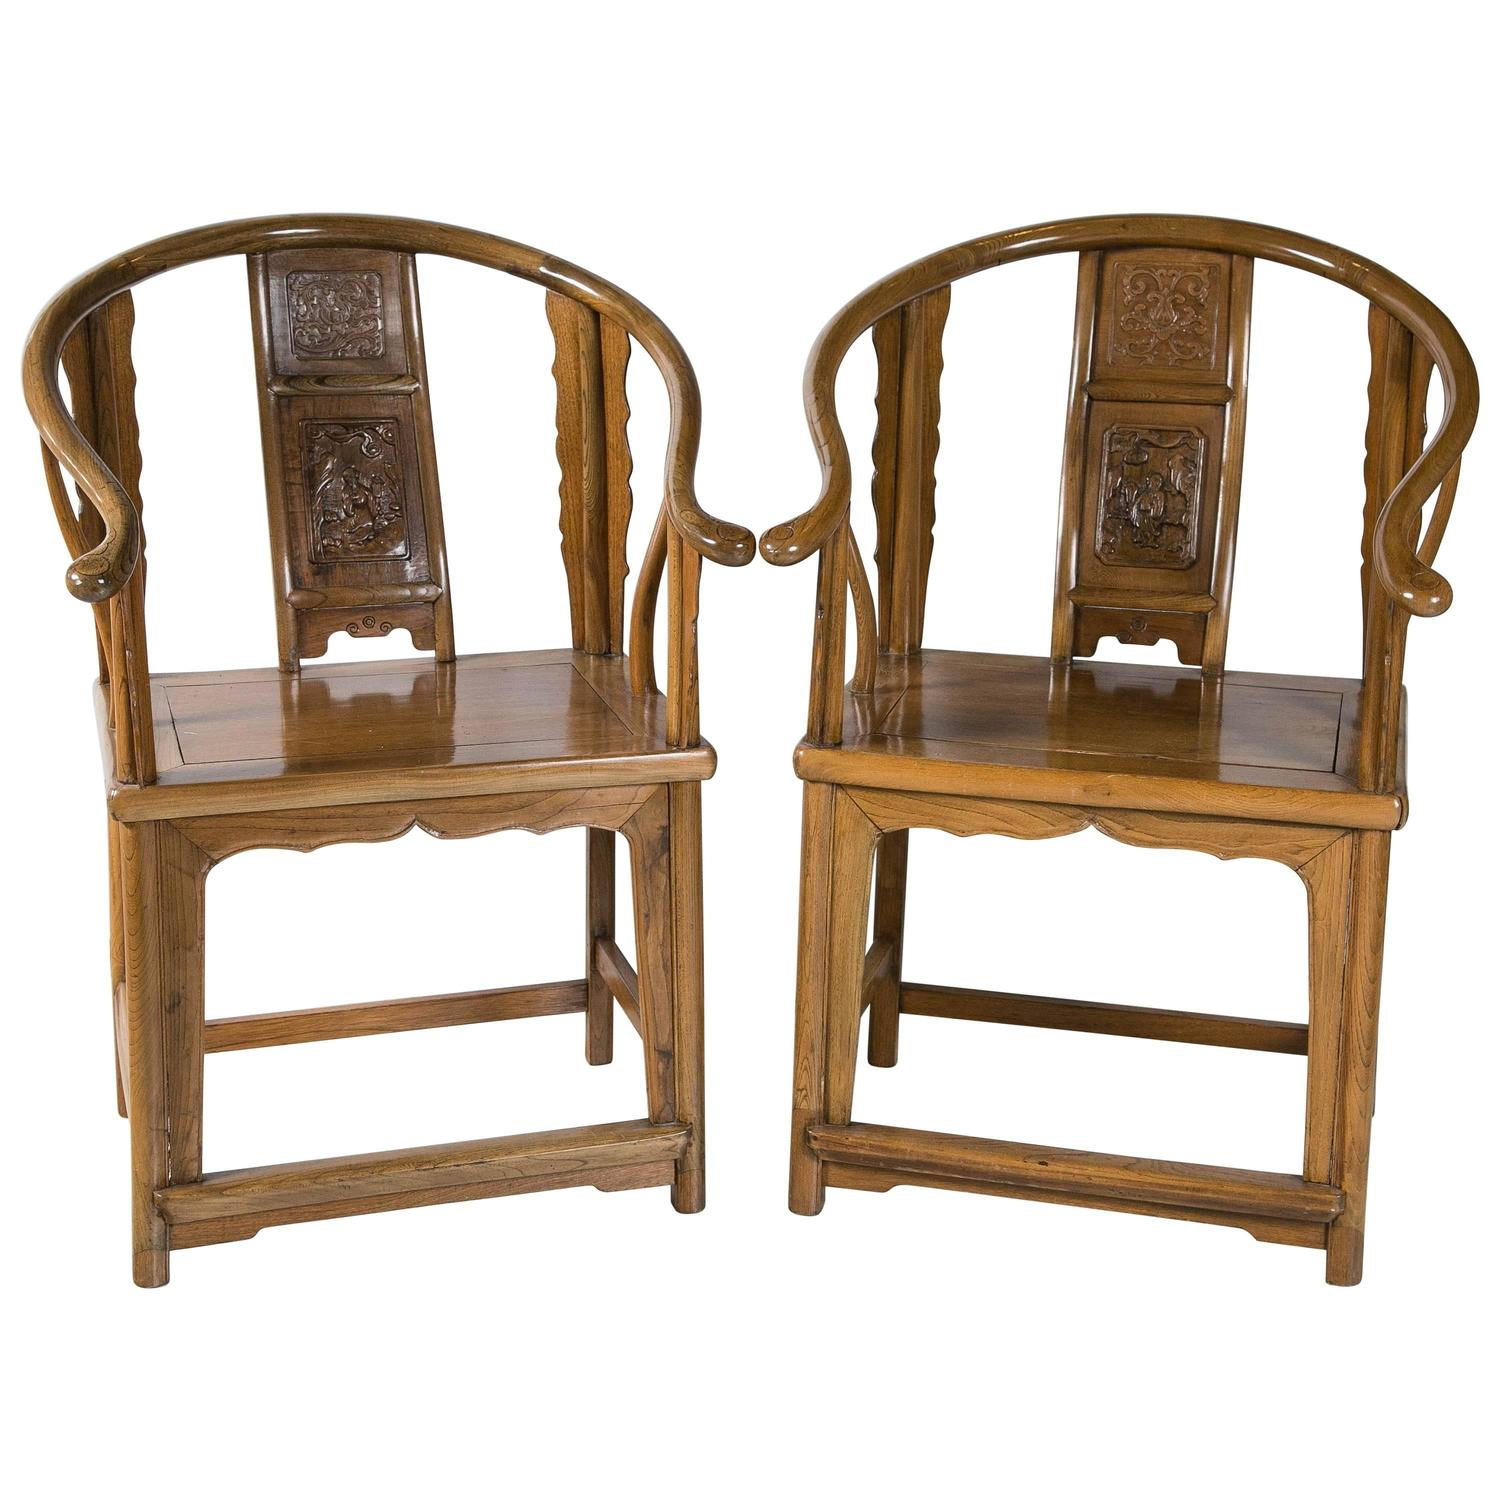 Chinese Chair Antique Chinese Horseshoe Chairs 19th Century For Sale At